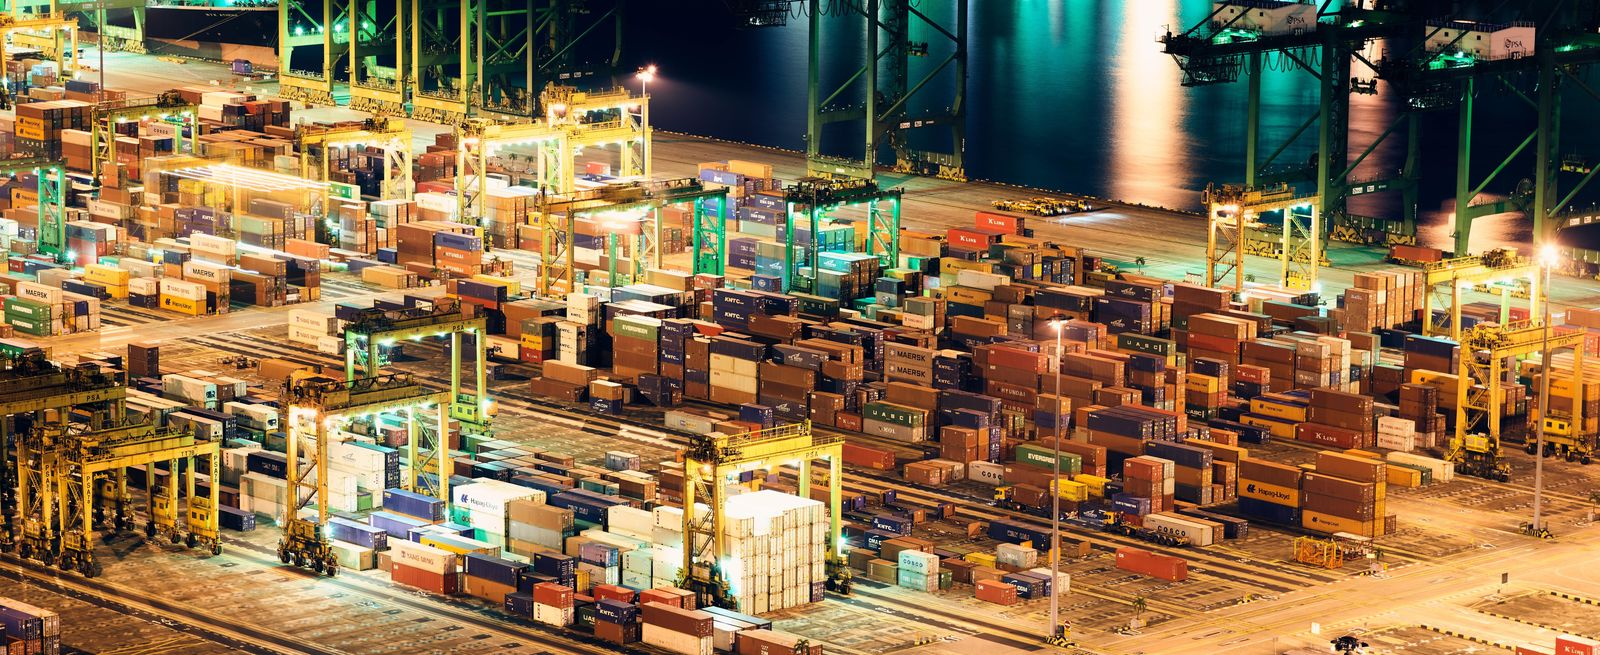 cargo containers at port yard lighted at night by bright lights